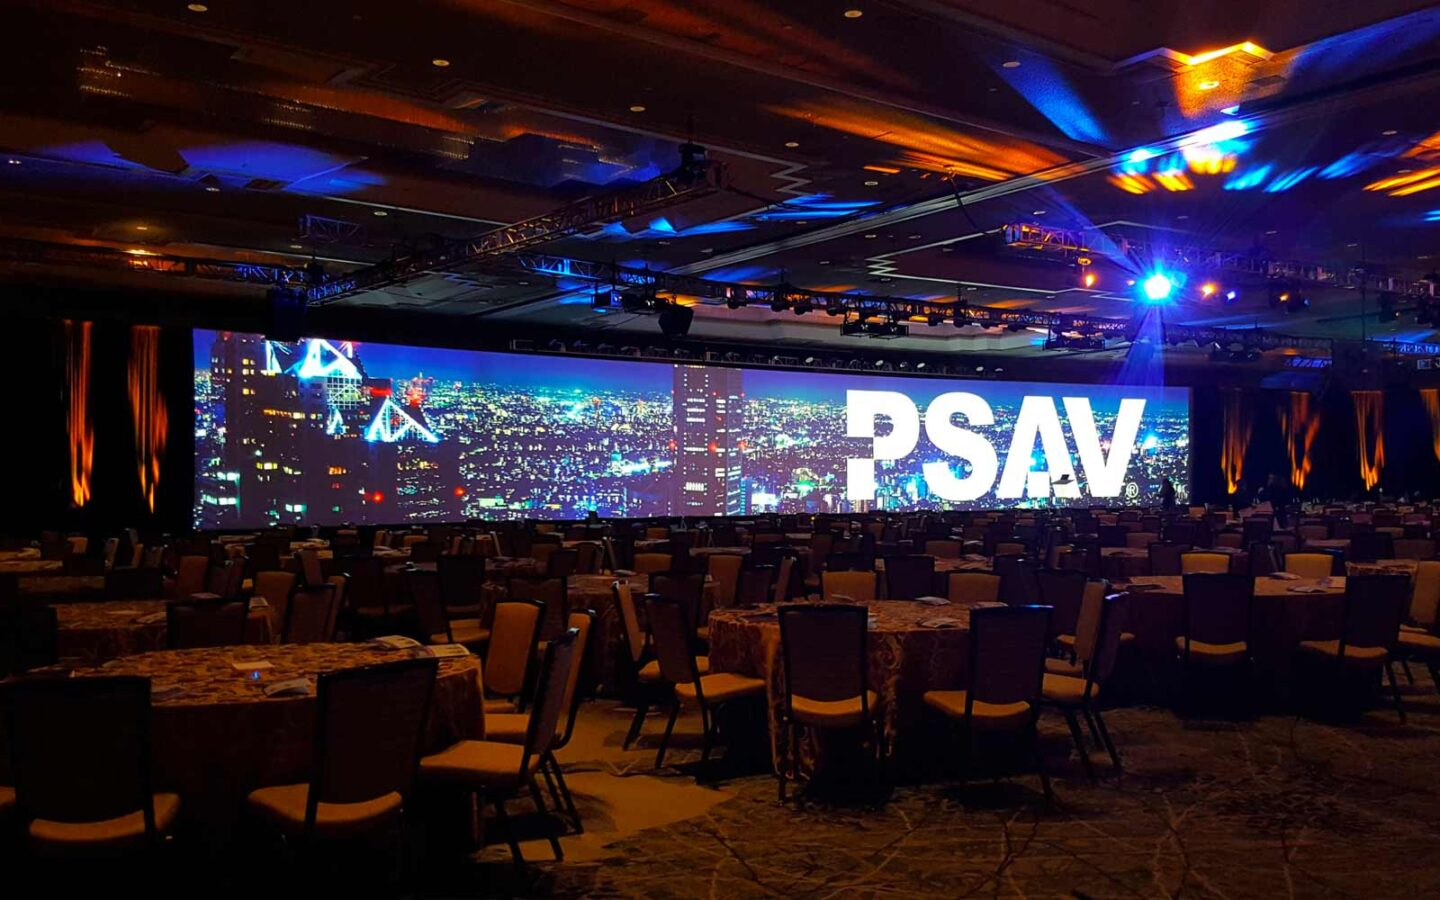 The Phoenician meeting room set for large audio visual event